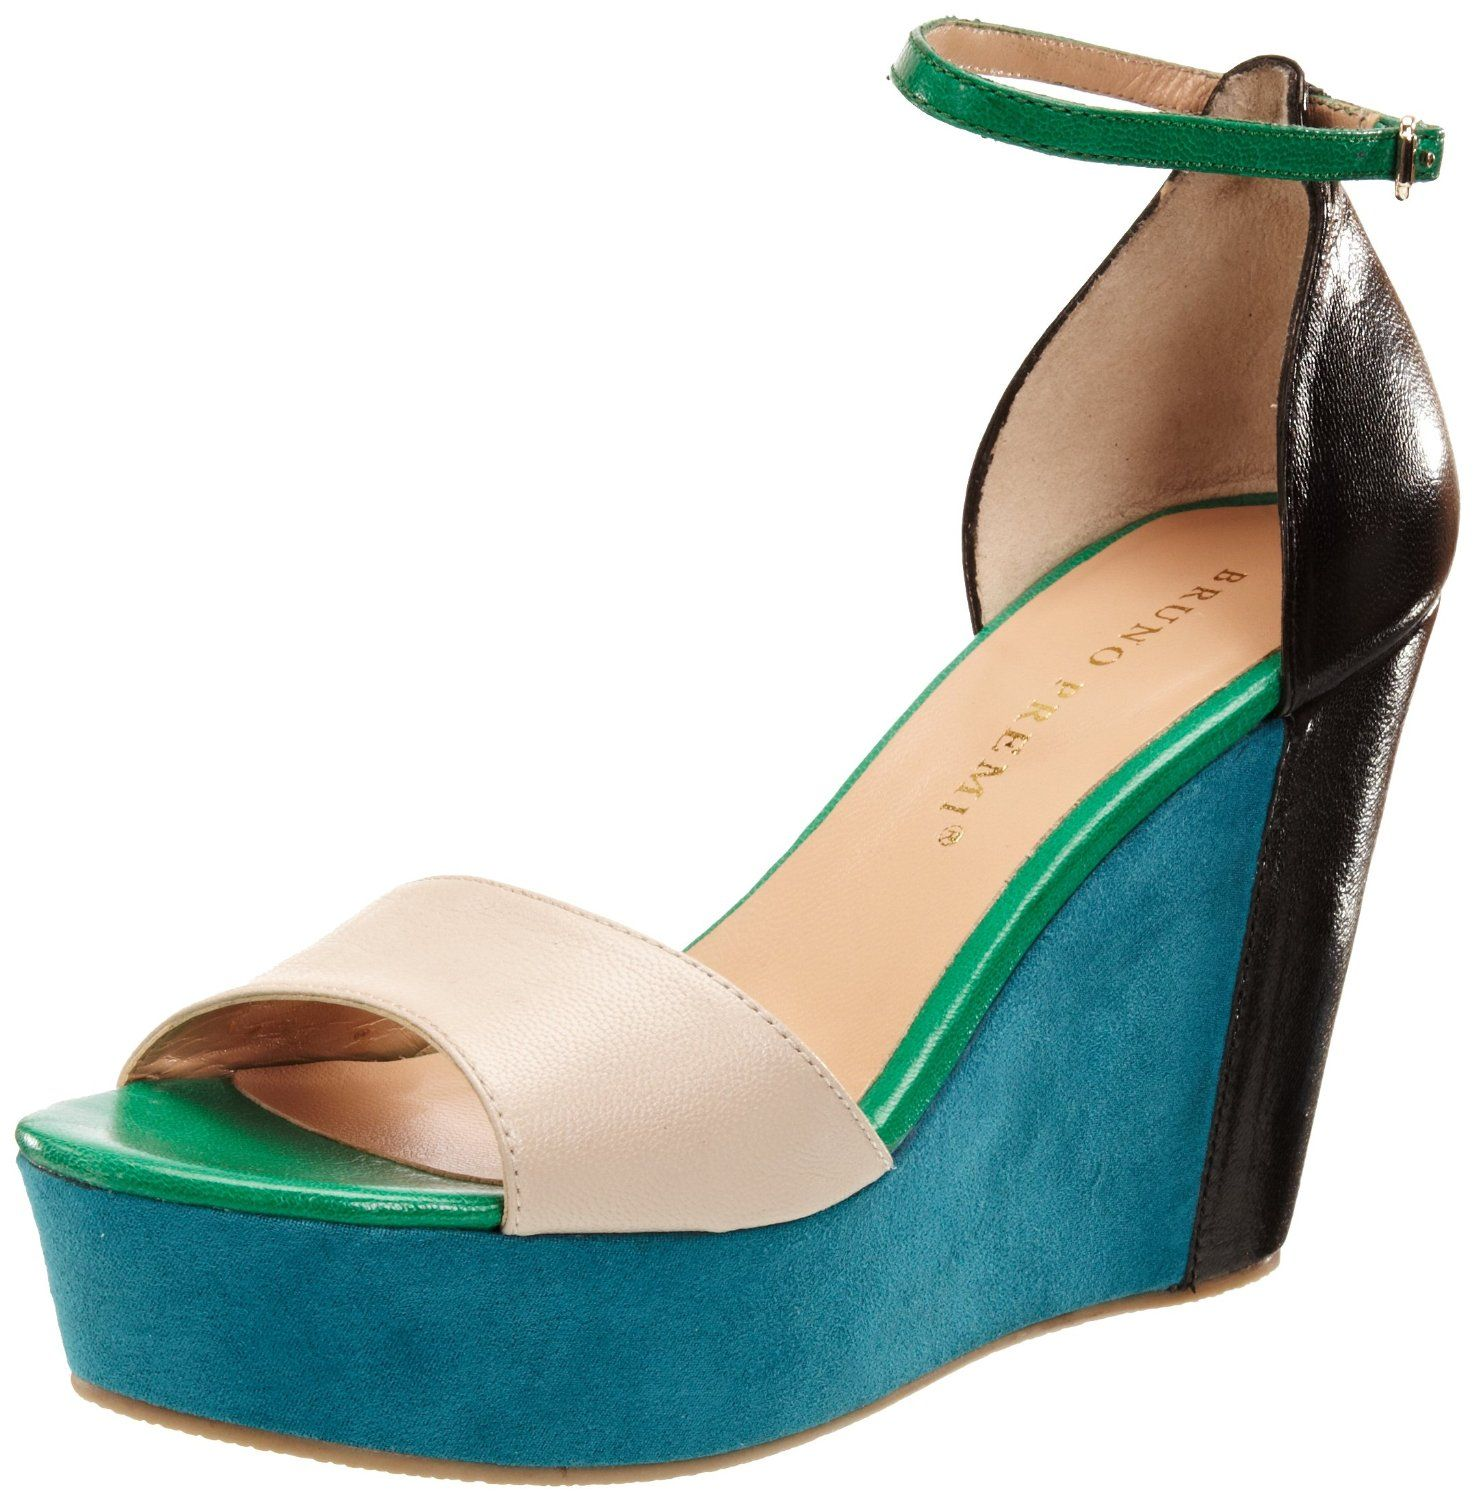 Perfect For The Upcoming Spring: Bruno Premi Womens Capra Wedges